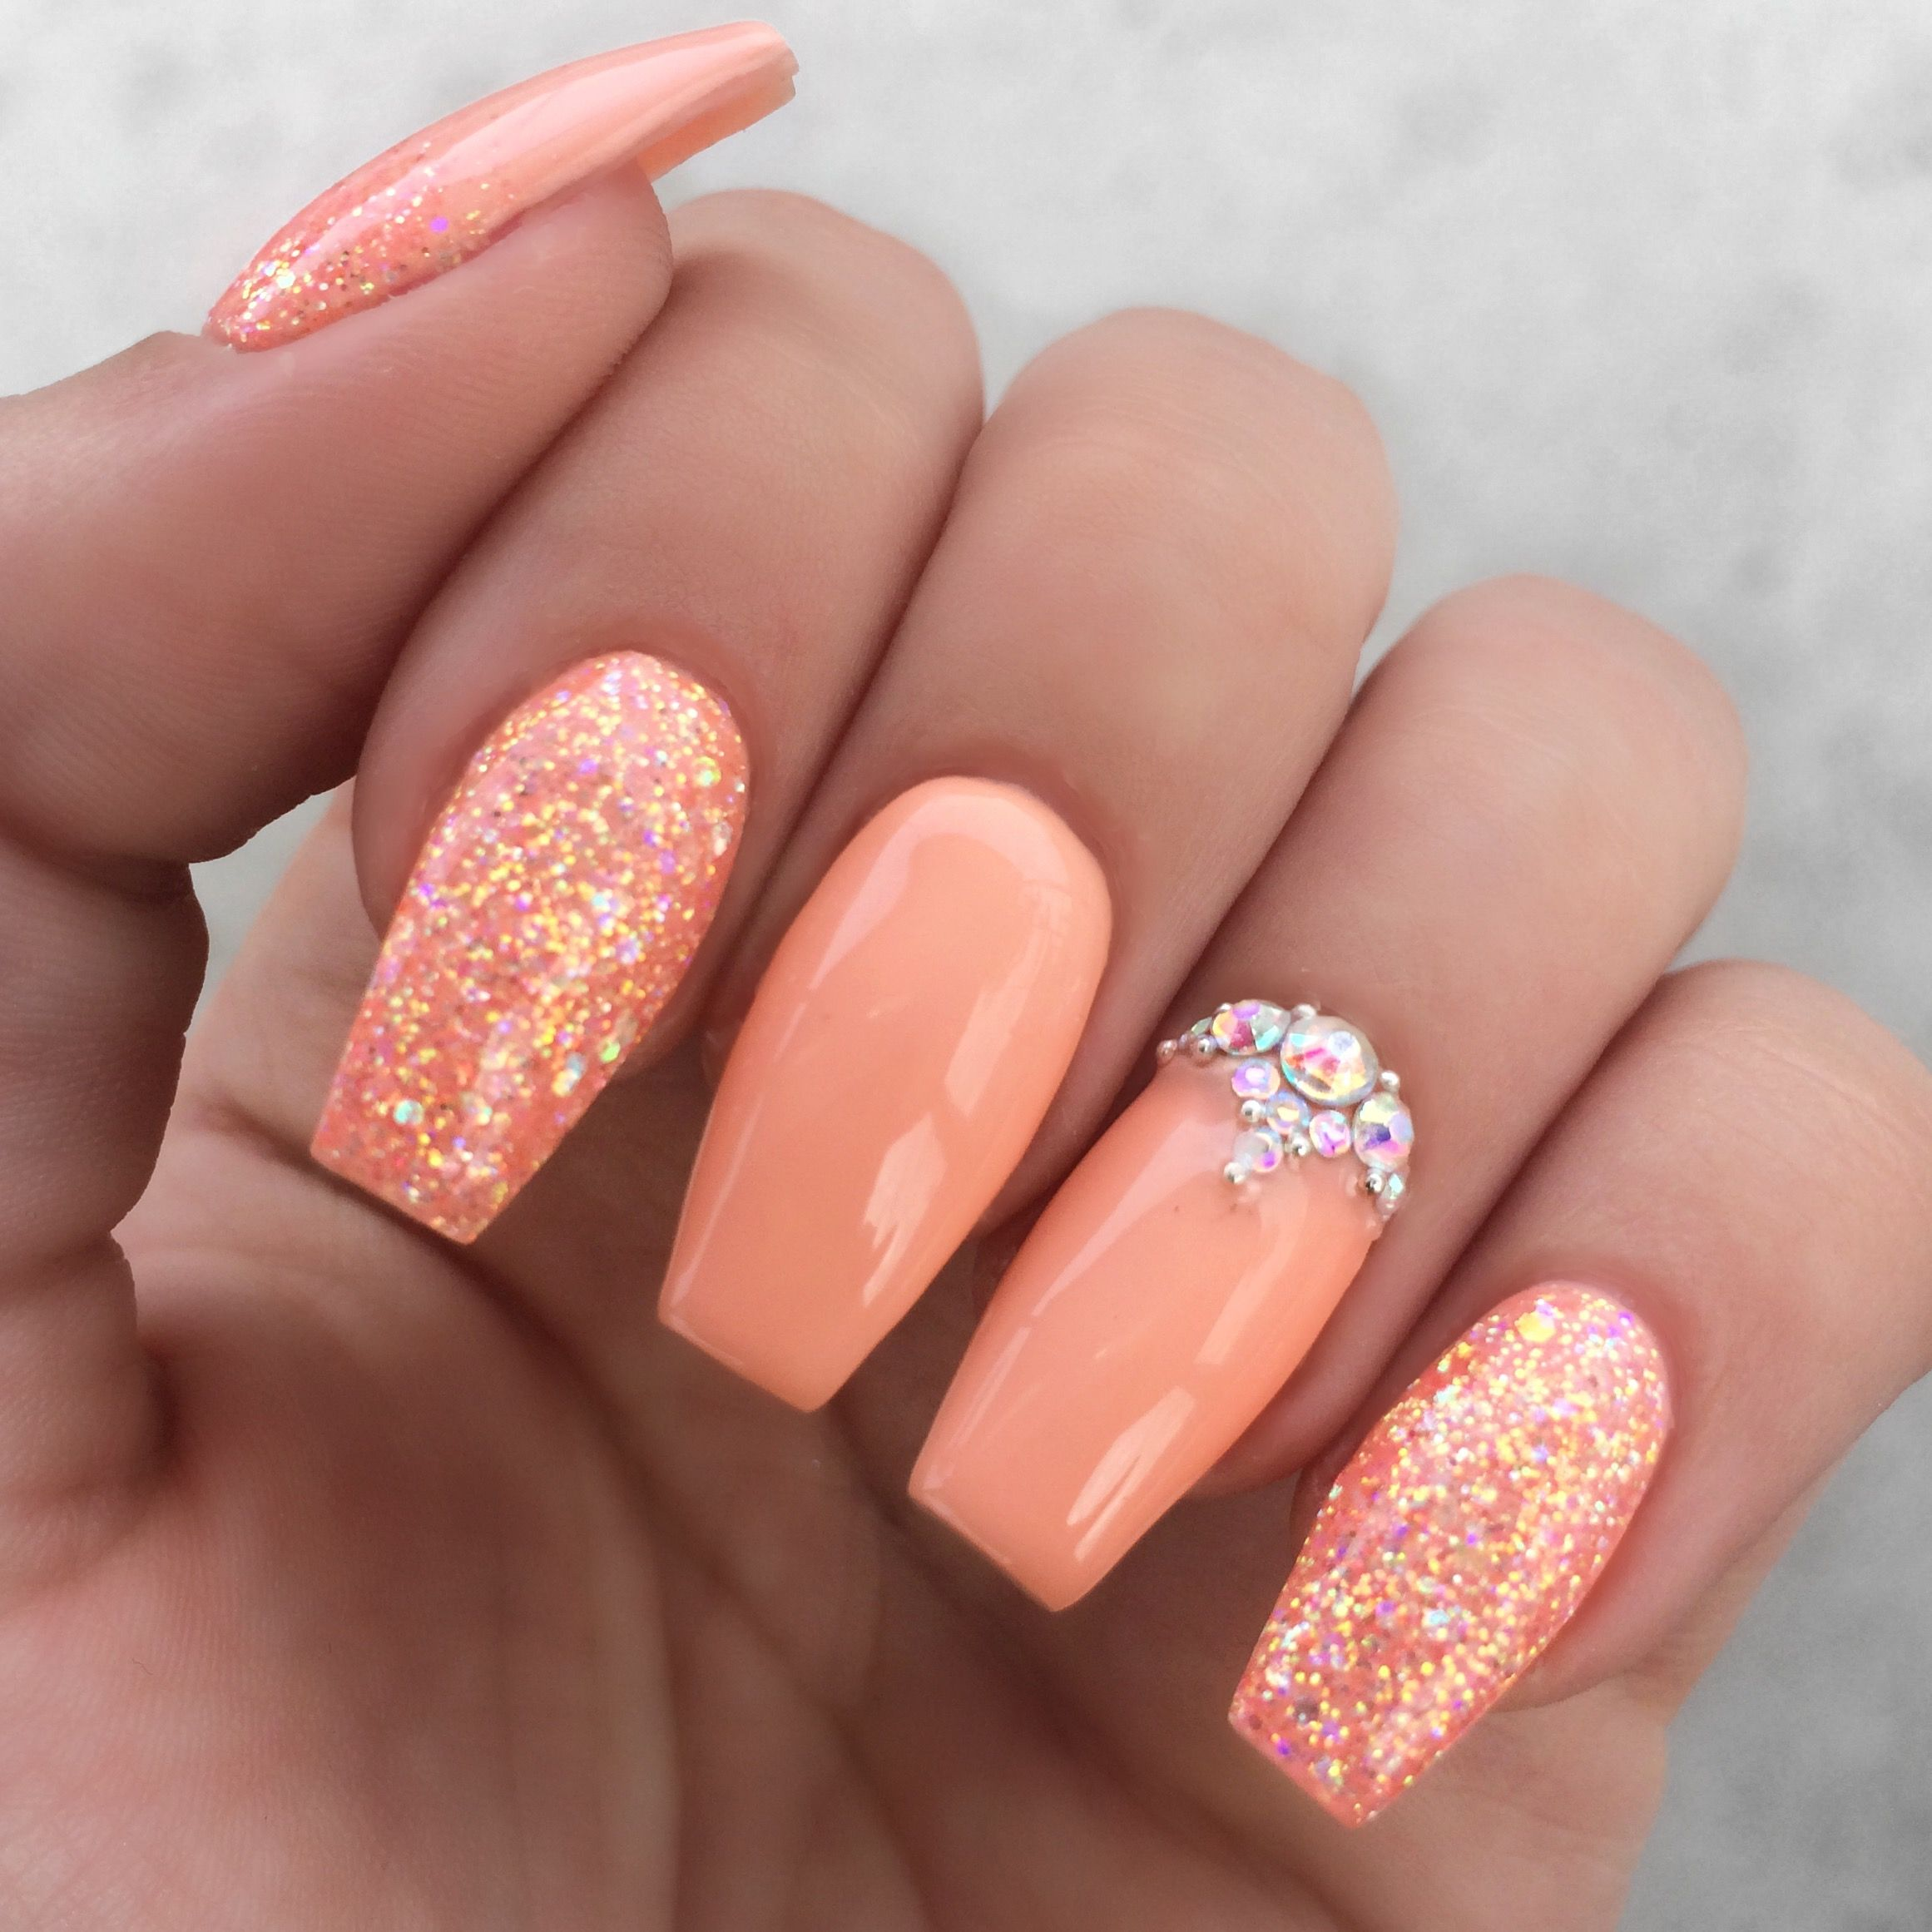 Girly peach glitter rhinestone nails